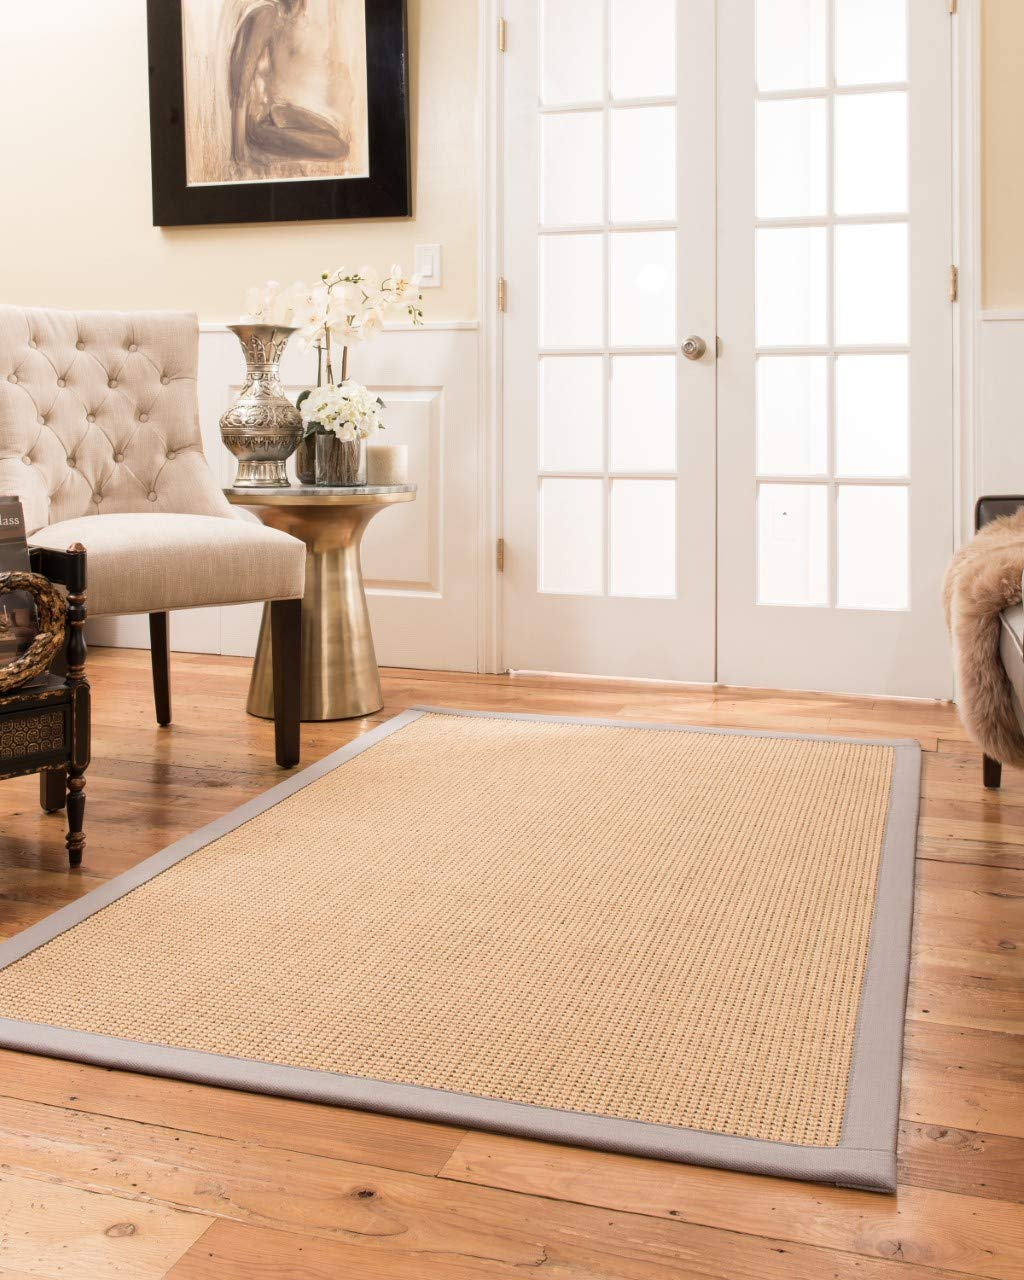 Natural Area Rugs benedict Area Rug 6 x 9 Metal